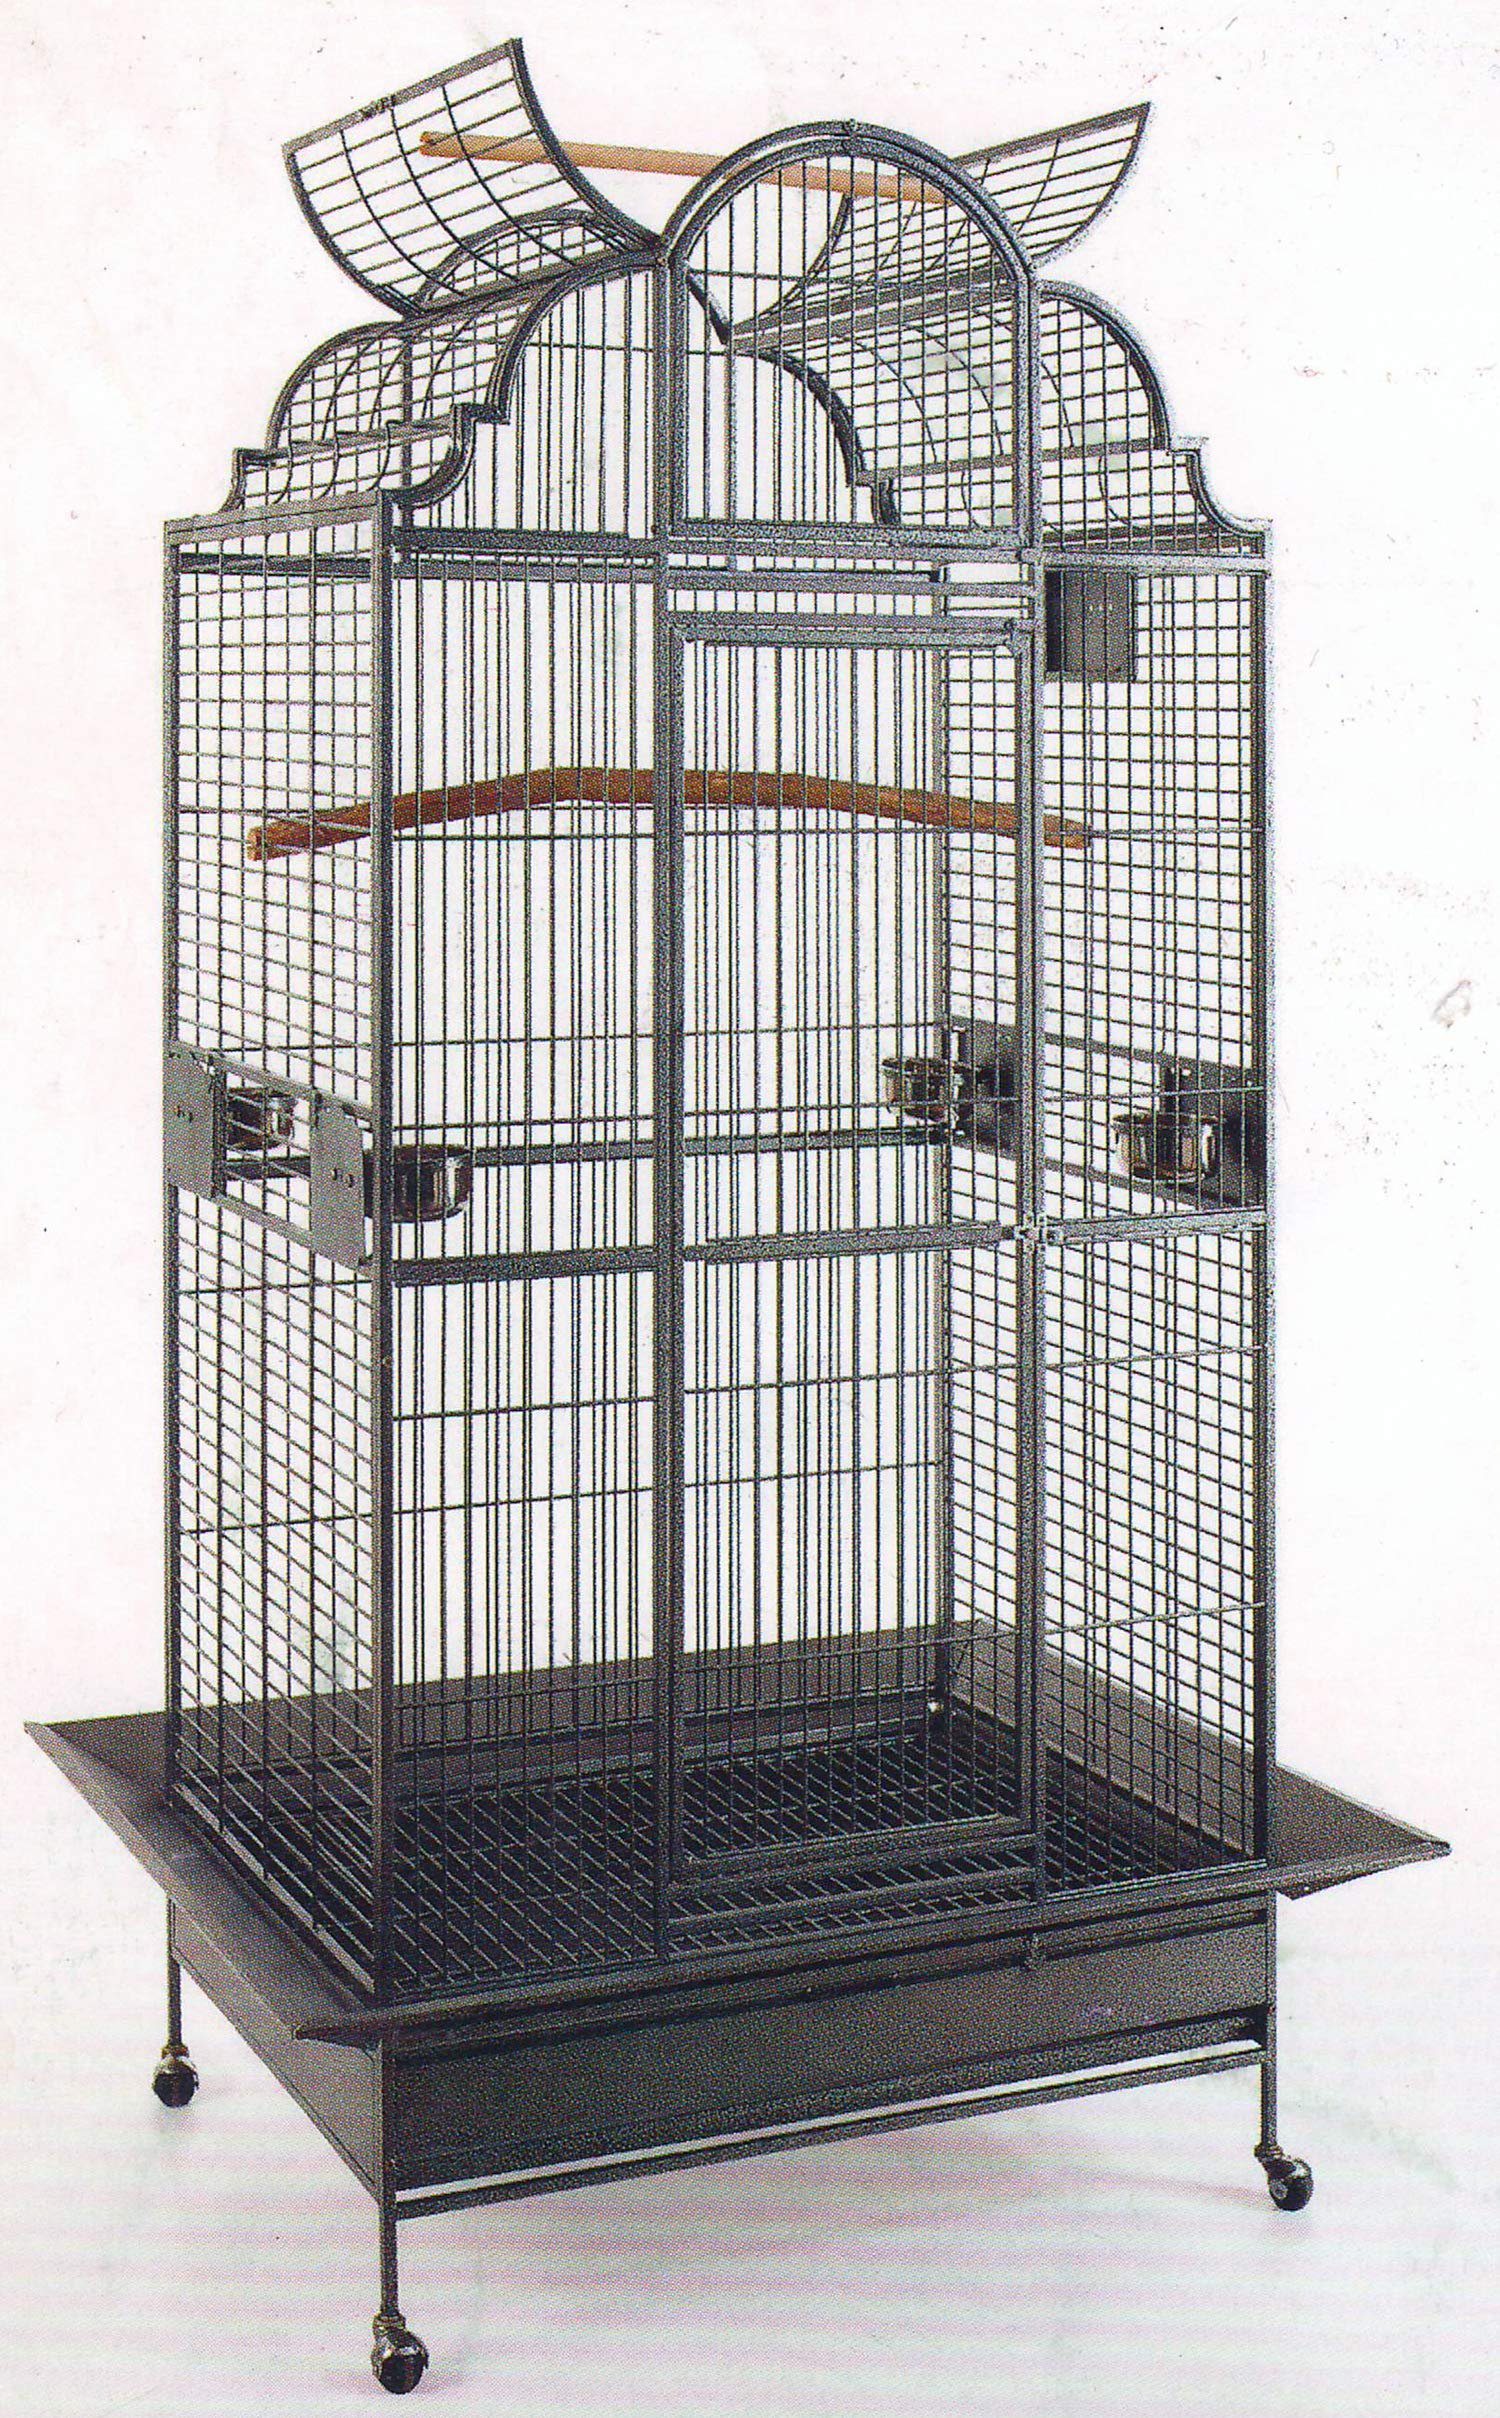 New Large Play Dome Top Wrought Iron Bird Parrot Parttot Finch Macaw Cockatoo Cage Including Stand, Seed Guard and Play Top Stand (BlackVein) by Mcage